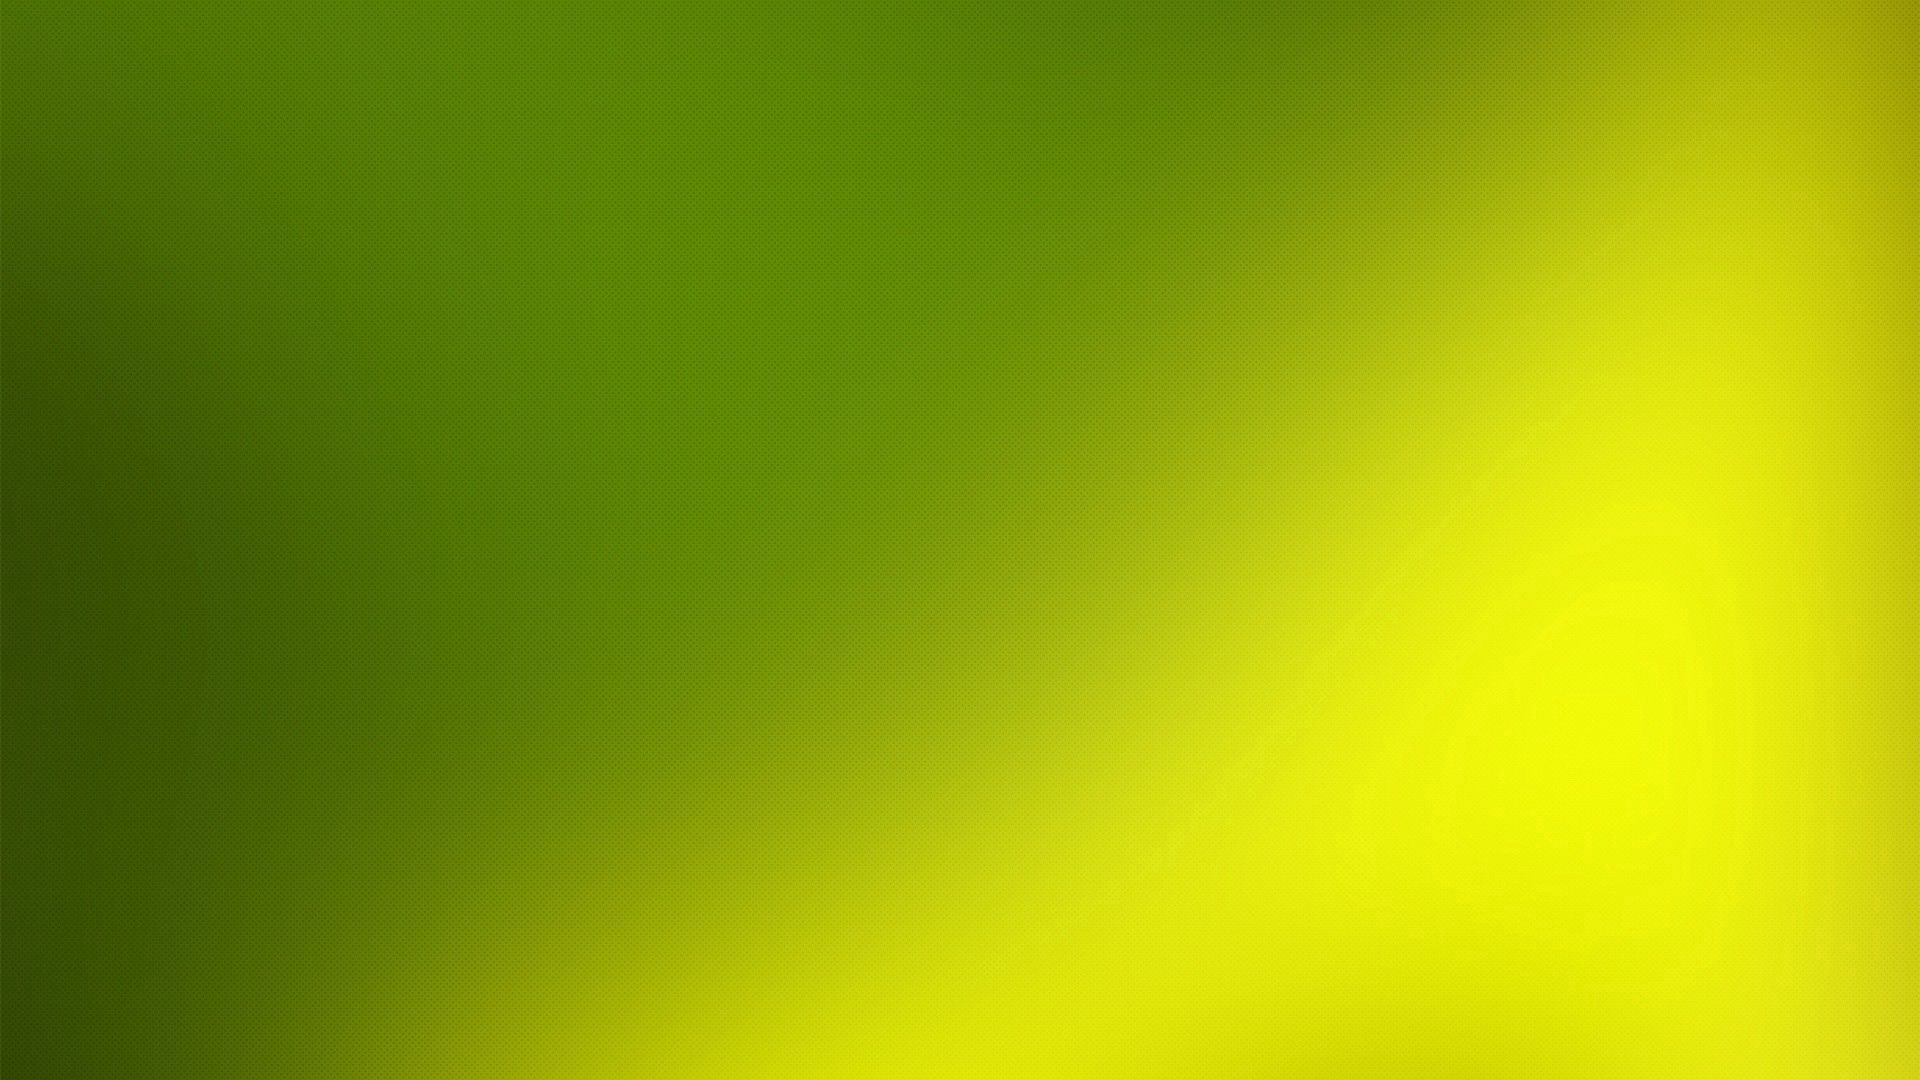 125464 download wallpaper Abstract, Background, Stains, Spots, Shine, Light screensavers and pictures for free